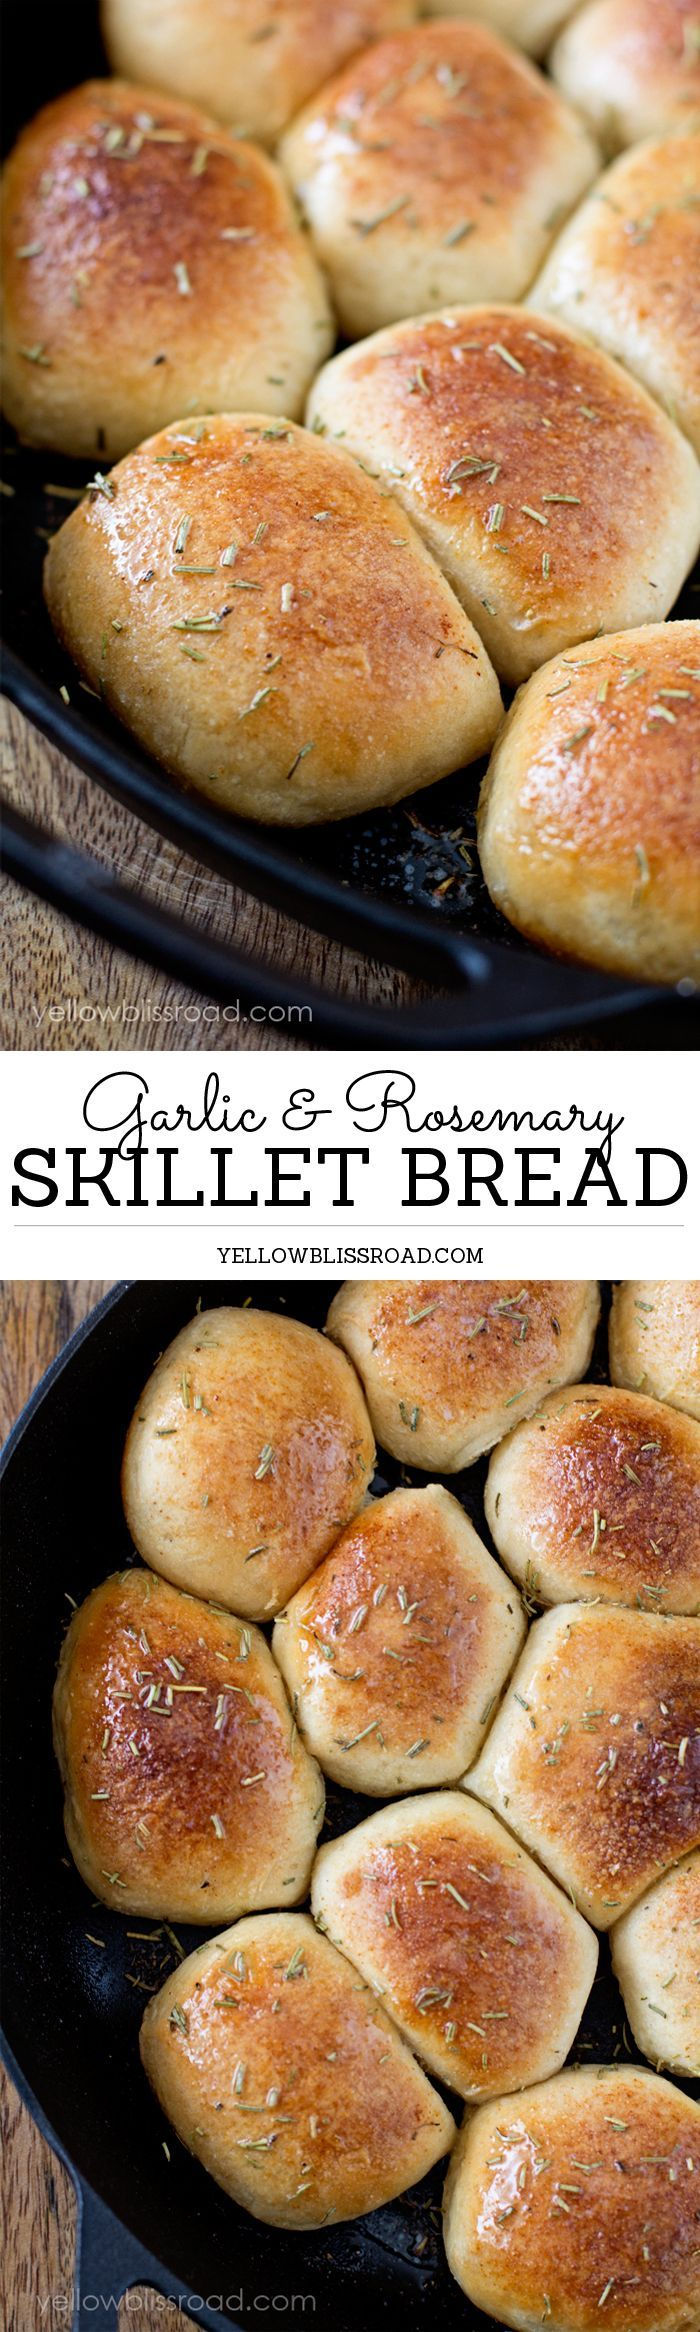 Garlic & Rosemary Skillet Bread - So easy to make, no one will know they started as basic frozen dinner rolls!